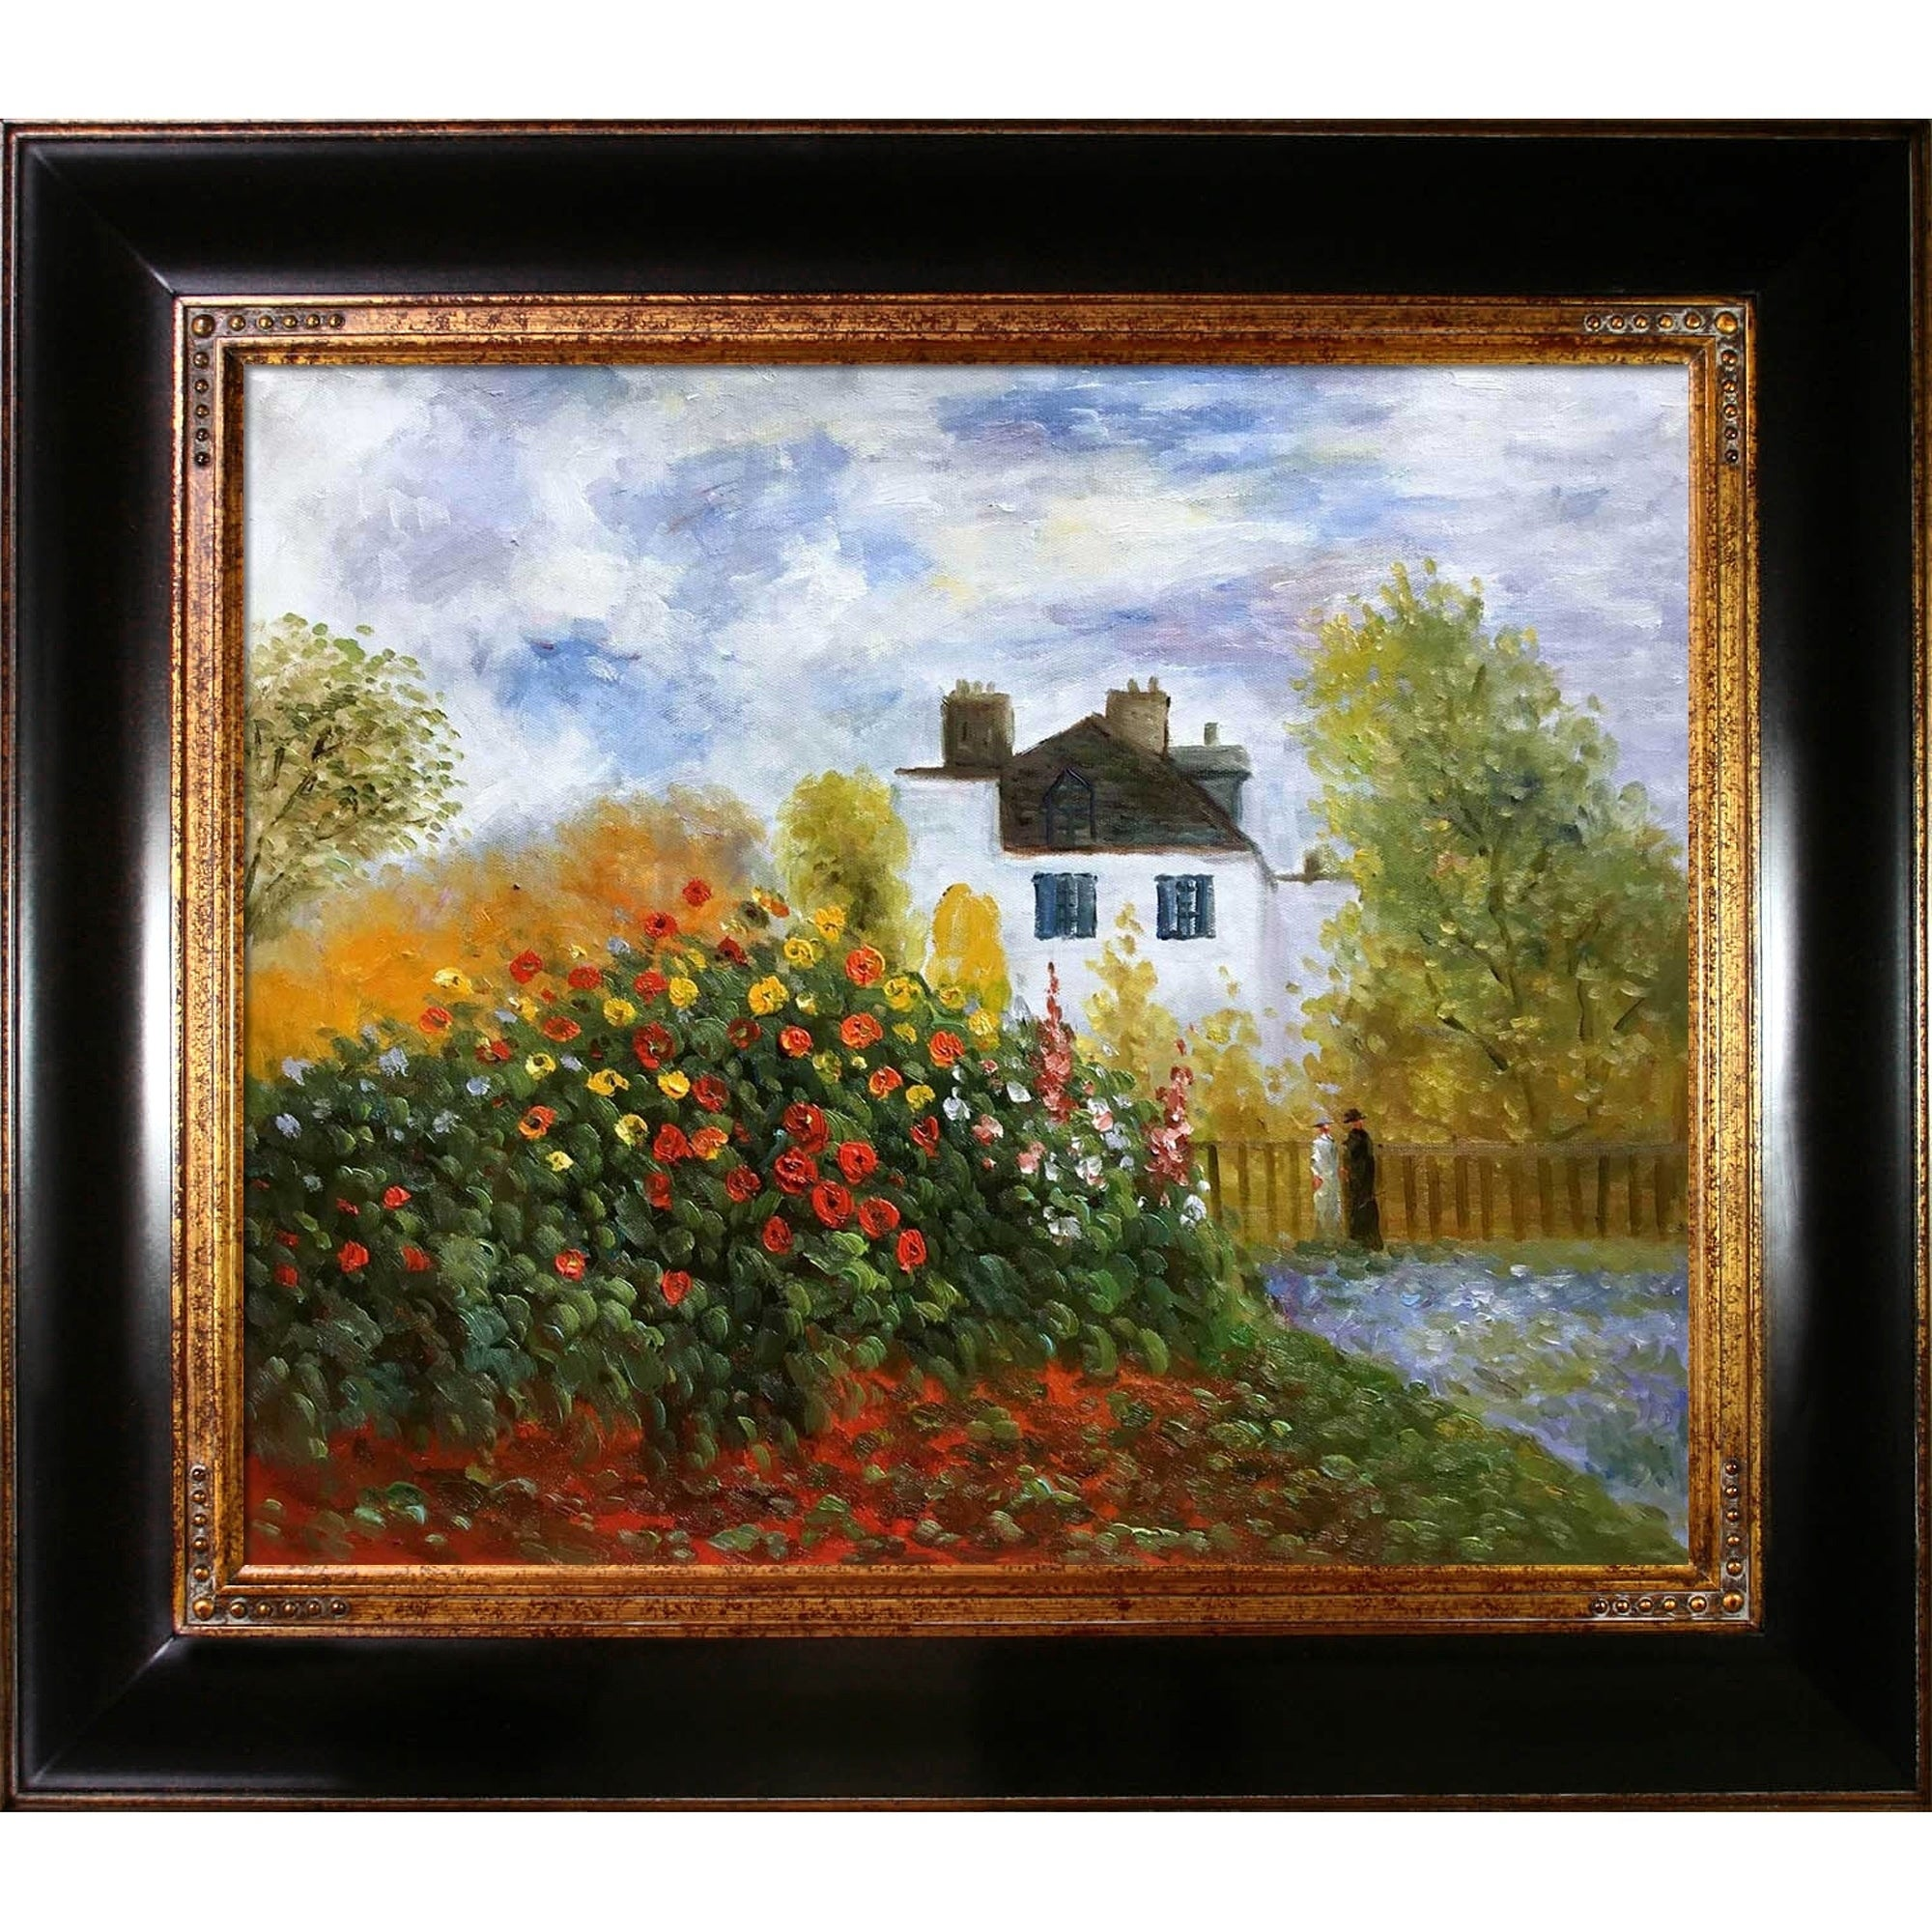 Claude Monet The Garden of Monet Hand Painted Oil Reproduction fee2198b e2f2 4898 b36b b e88